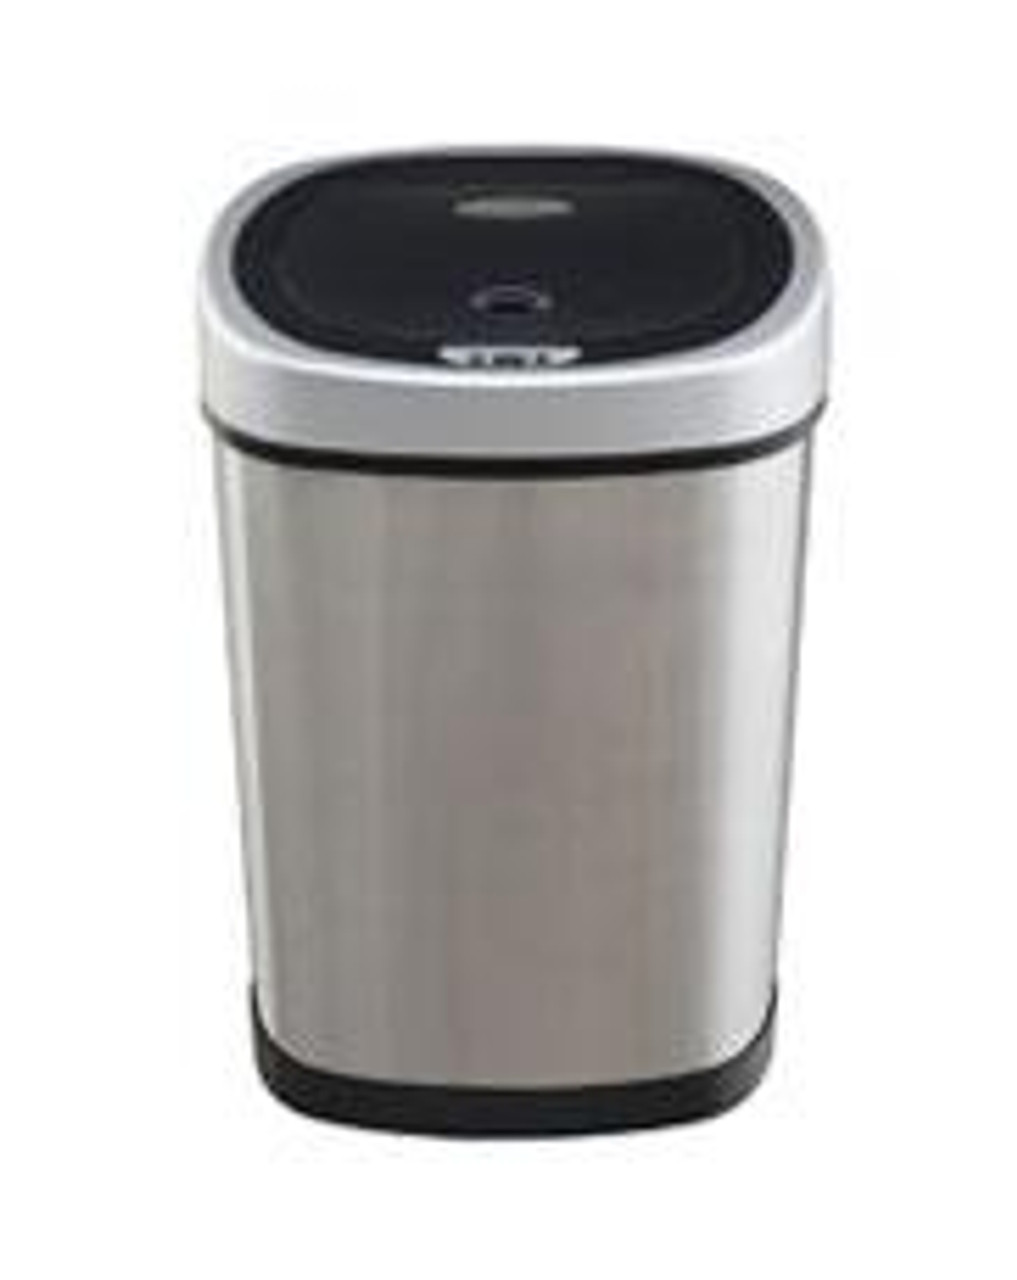 11-13 Gallon Touchless Automatic Trash Can Stainless Steel DZT-42-9